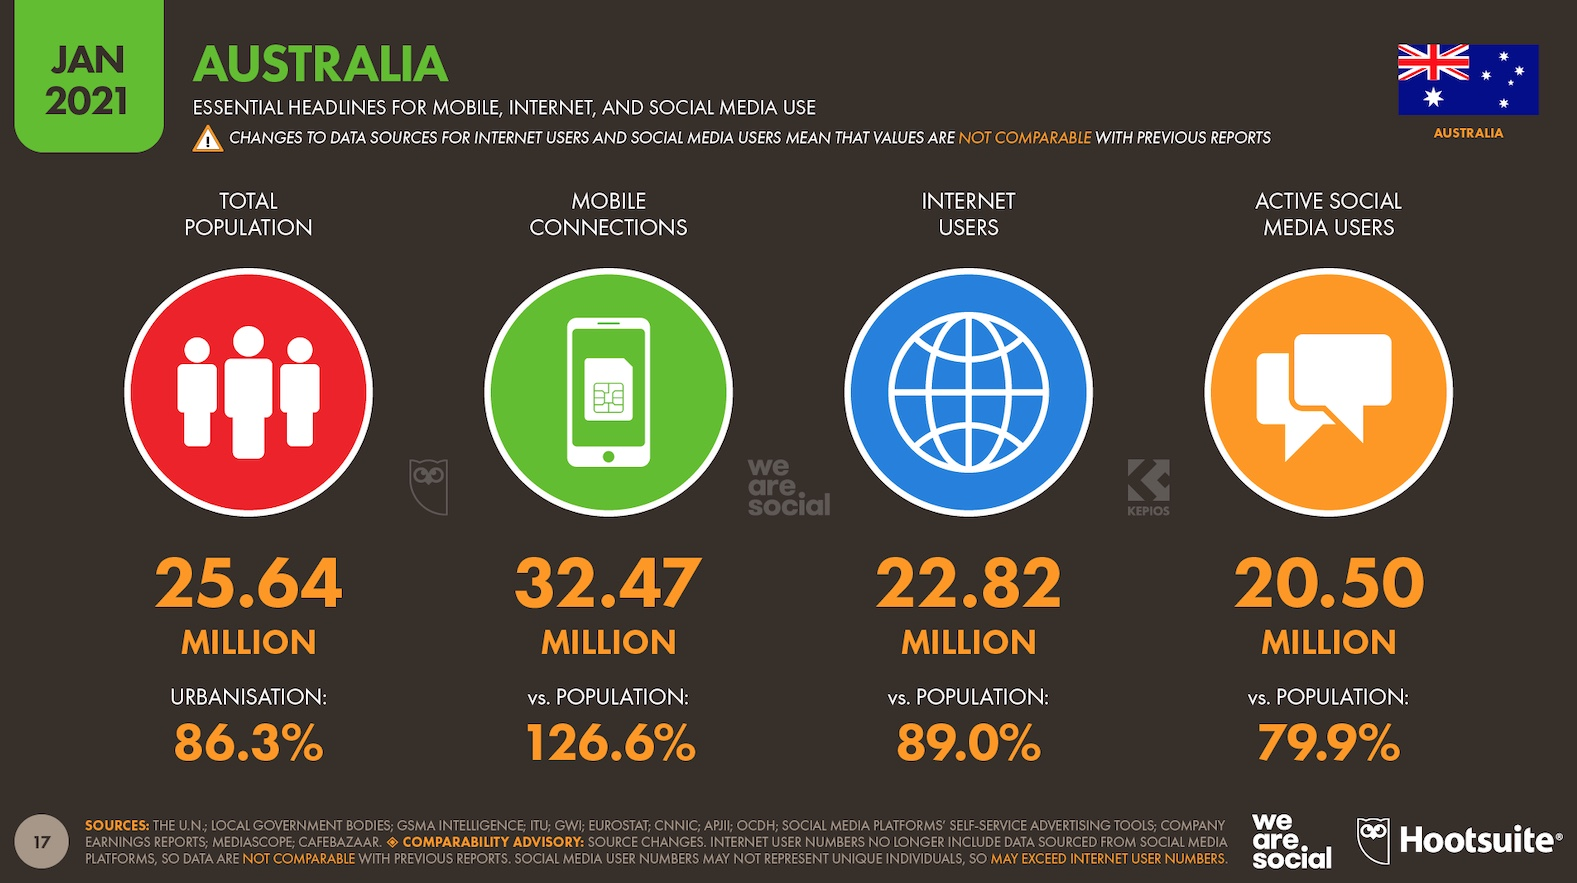 Digital in Australia: Time spent online has increased by 10% year-on-year